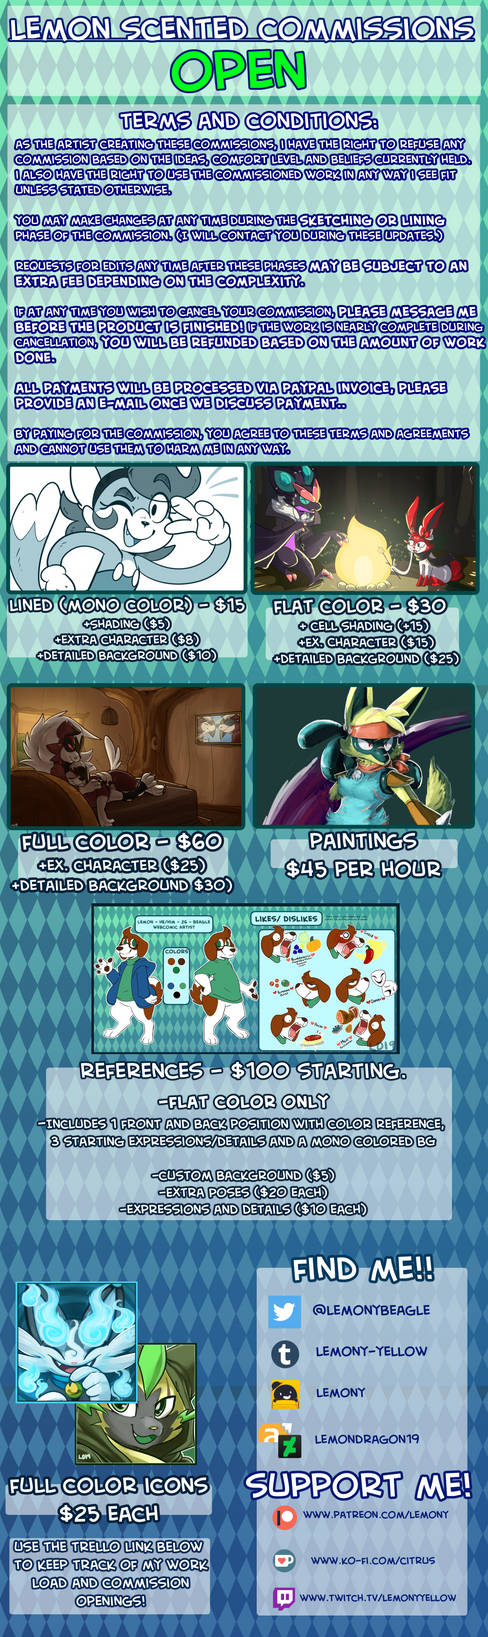 Commissions Prices and Information